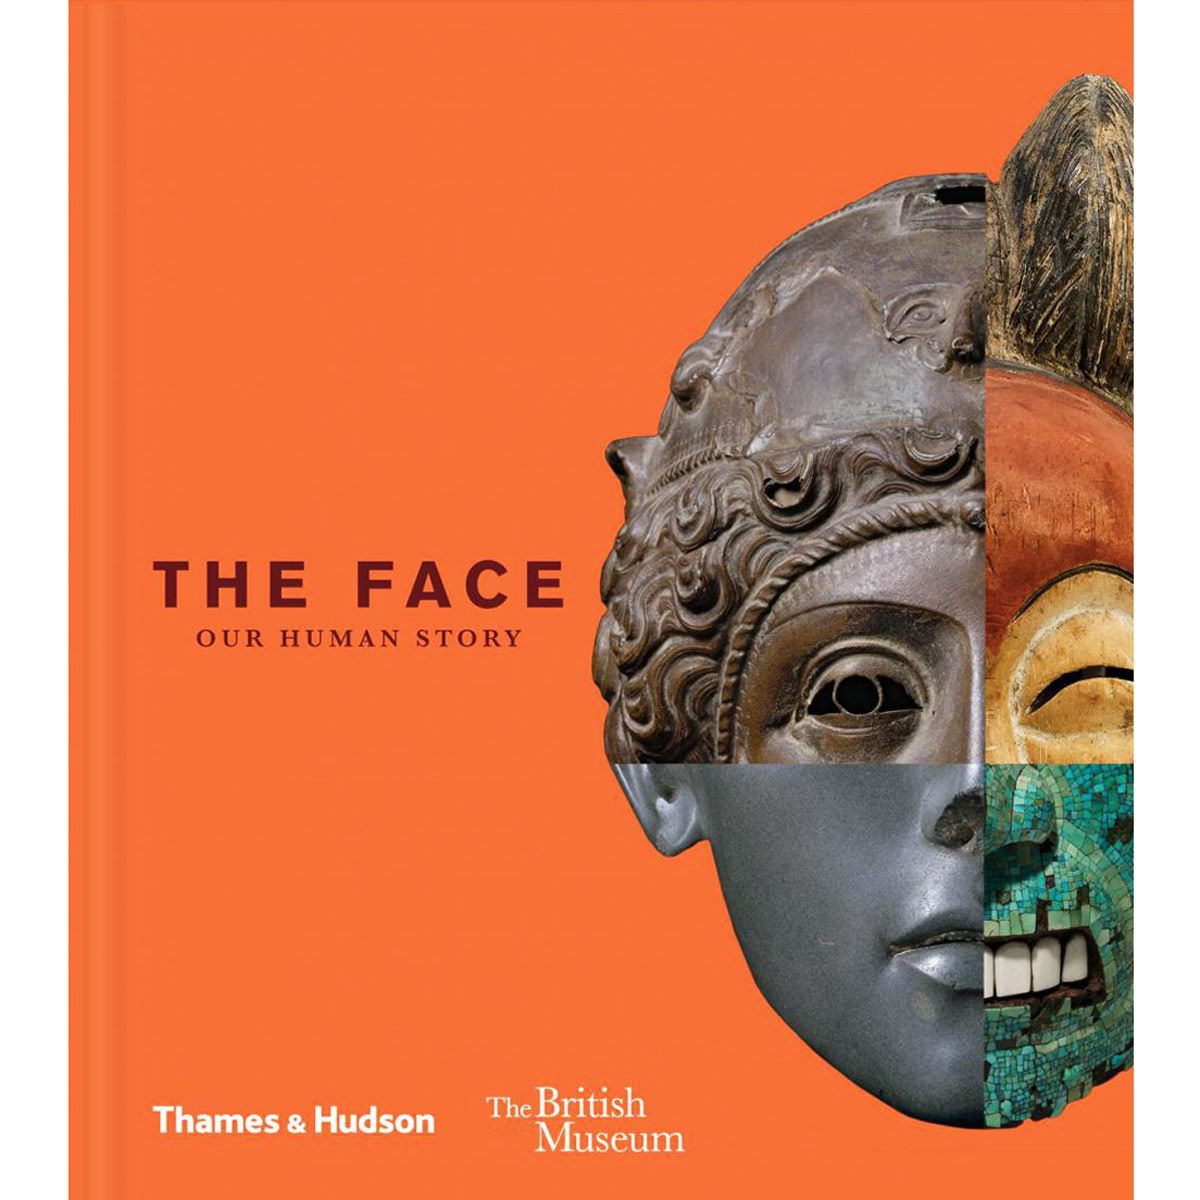 The face: our human history